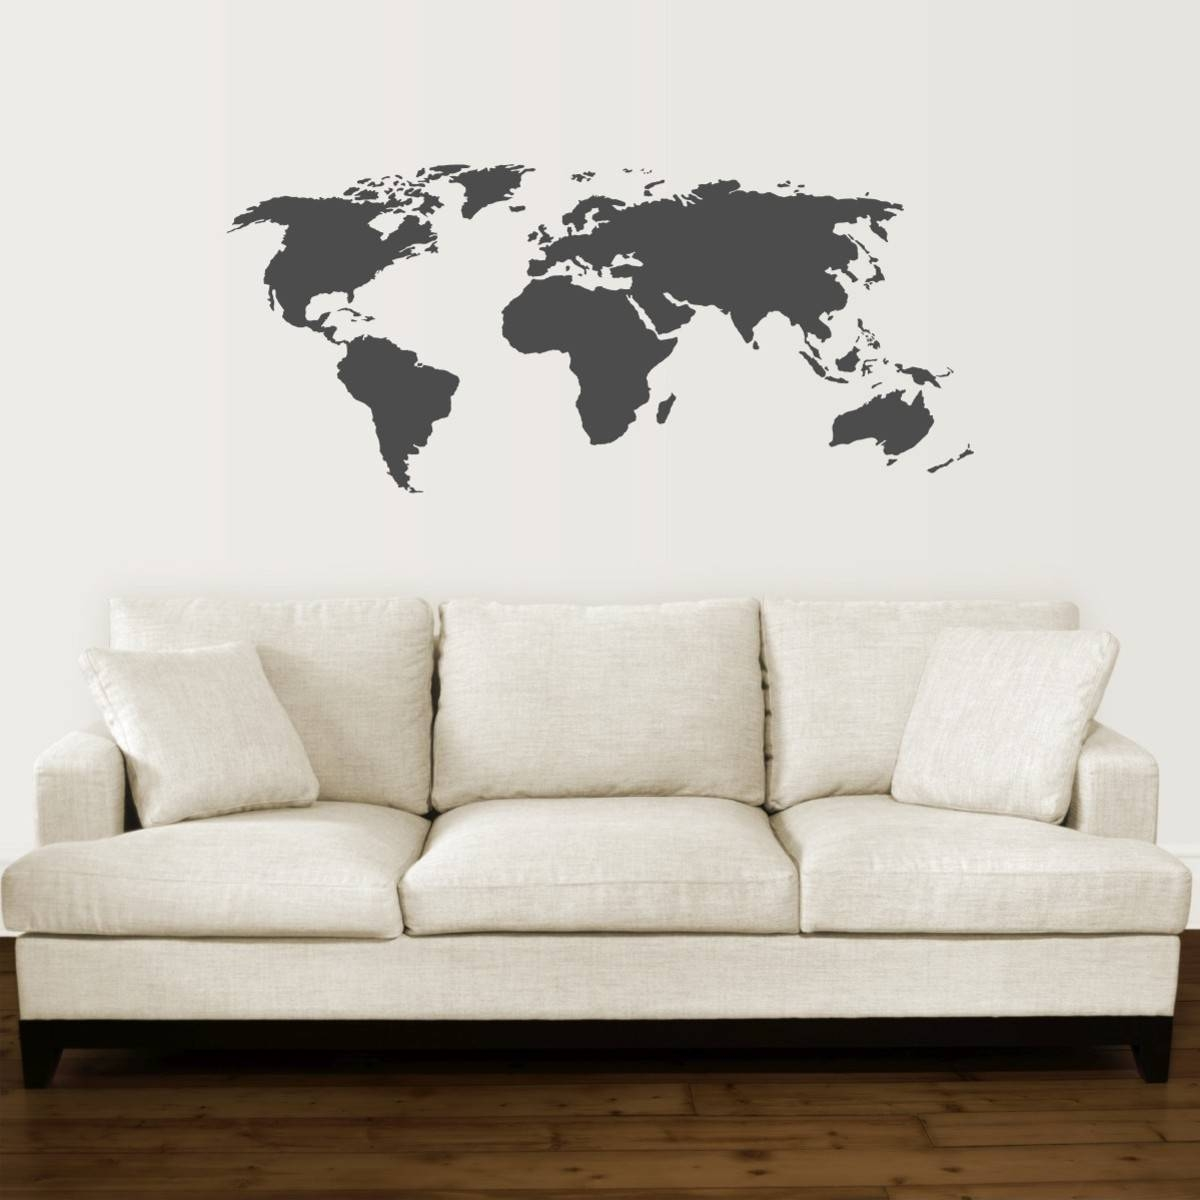 World Map Wall Quotes™ Wall Art Decal | Wallquotes Intended For Most Popular Map Wall Art (View 22 of 25)